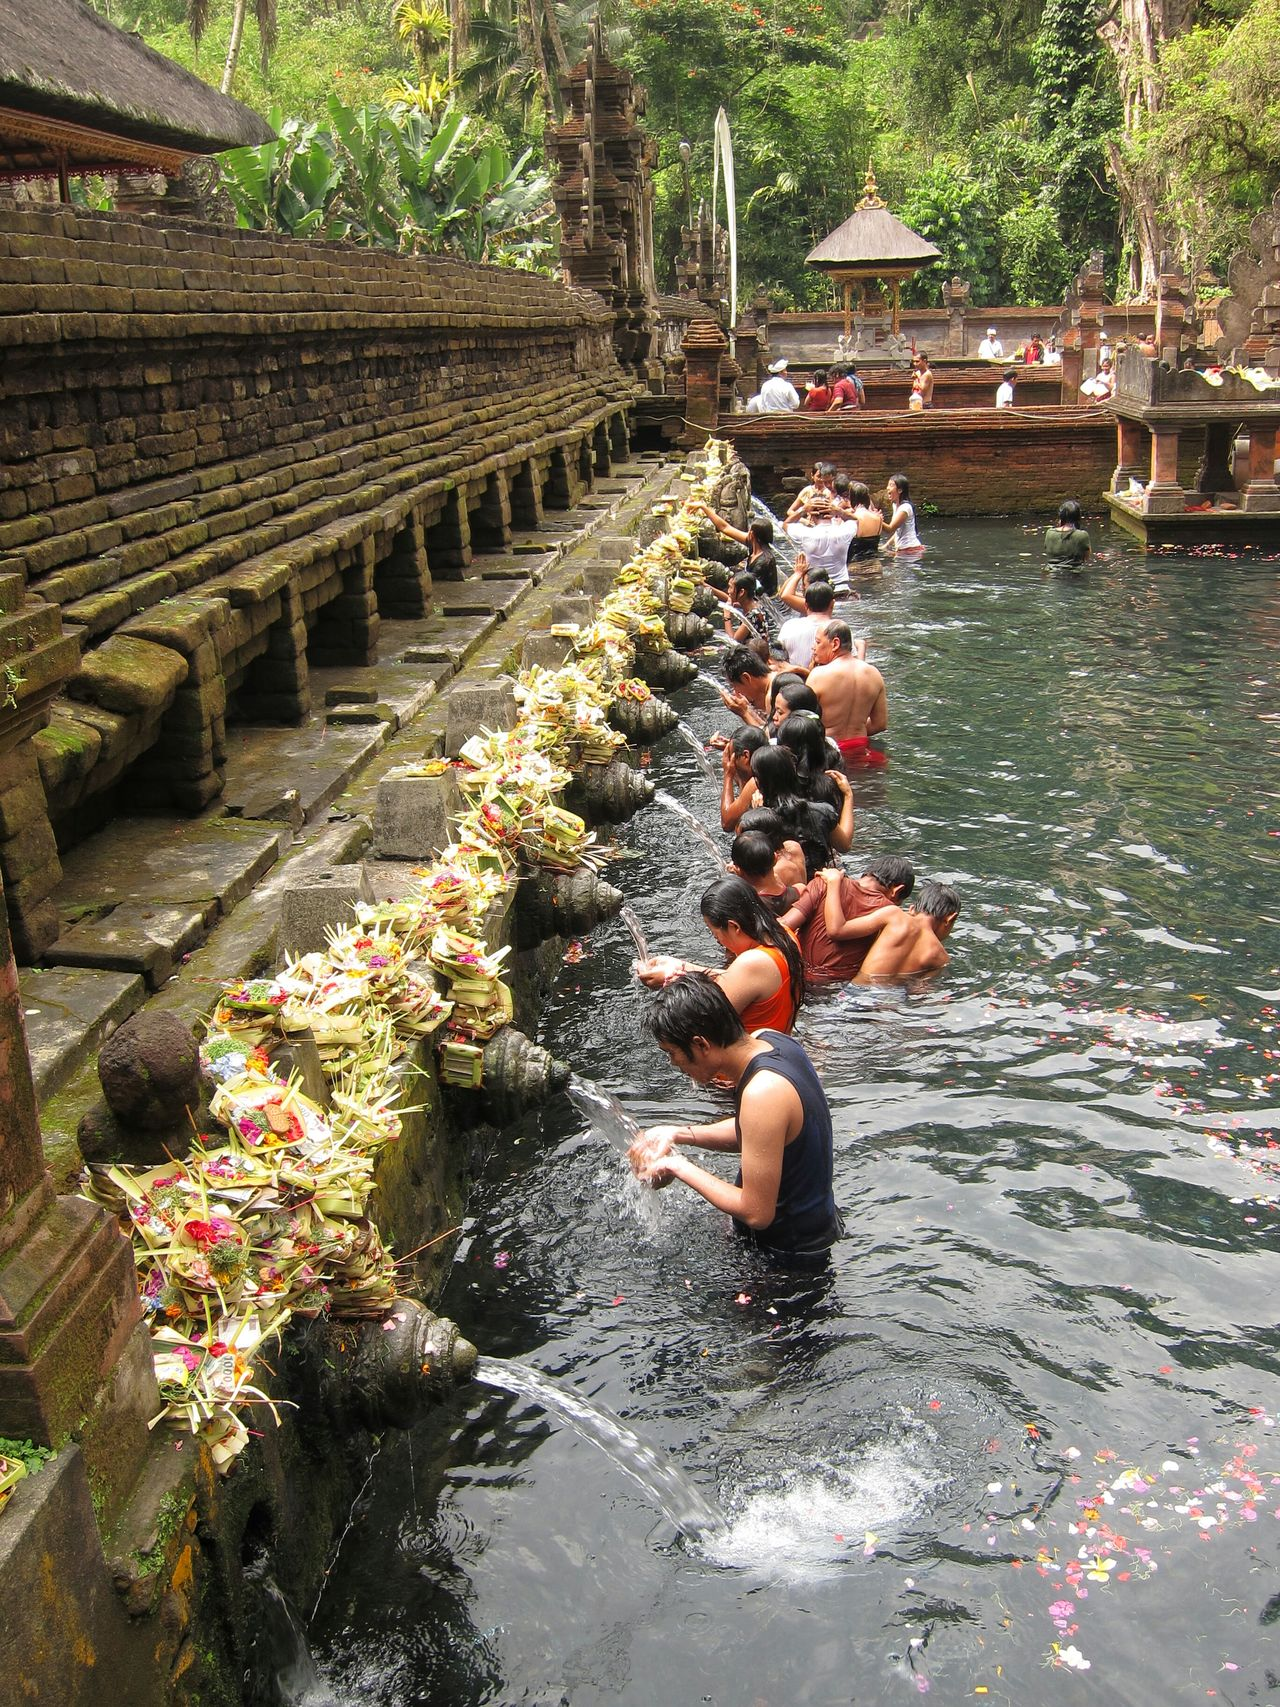 People Bathing in Holy Water Ritual Spring Spirituality Tradition Flowers Offerings Balinese Culture Religion Tirta Empul Hindu Pool Feel The Journey Flowing Water Ubud People Together Bali INDONESIA